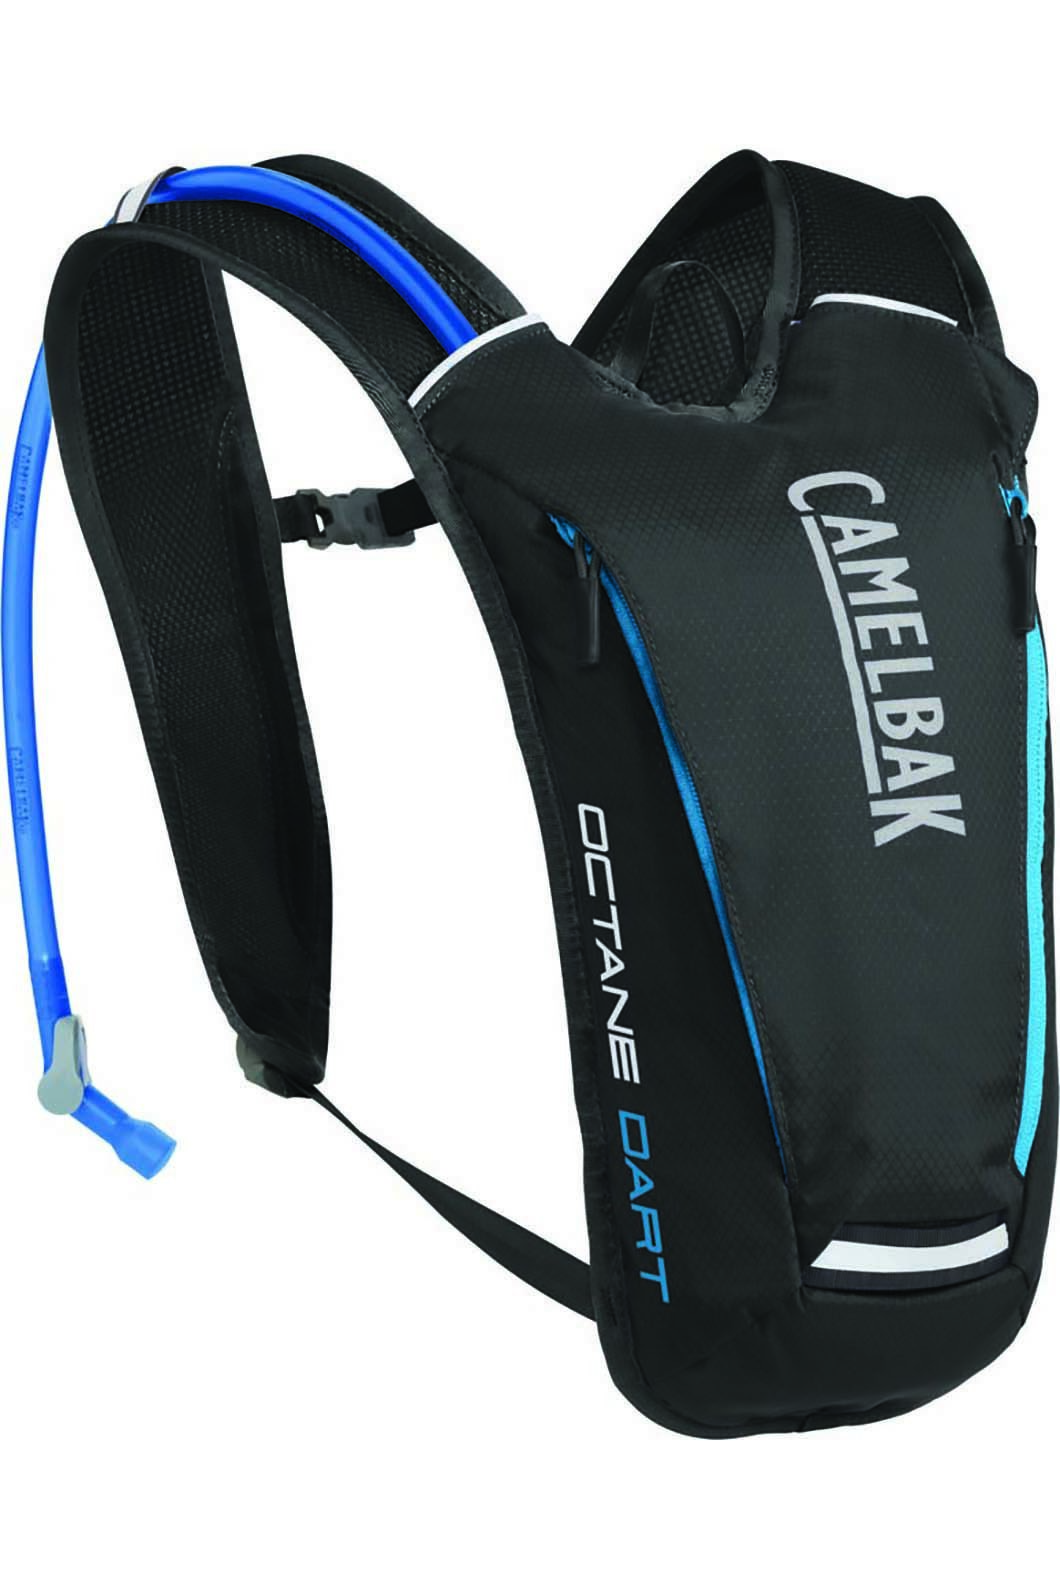 CamelBak Dart Hydration Pack 1L, None, hi-res